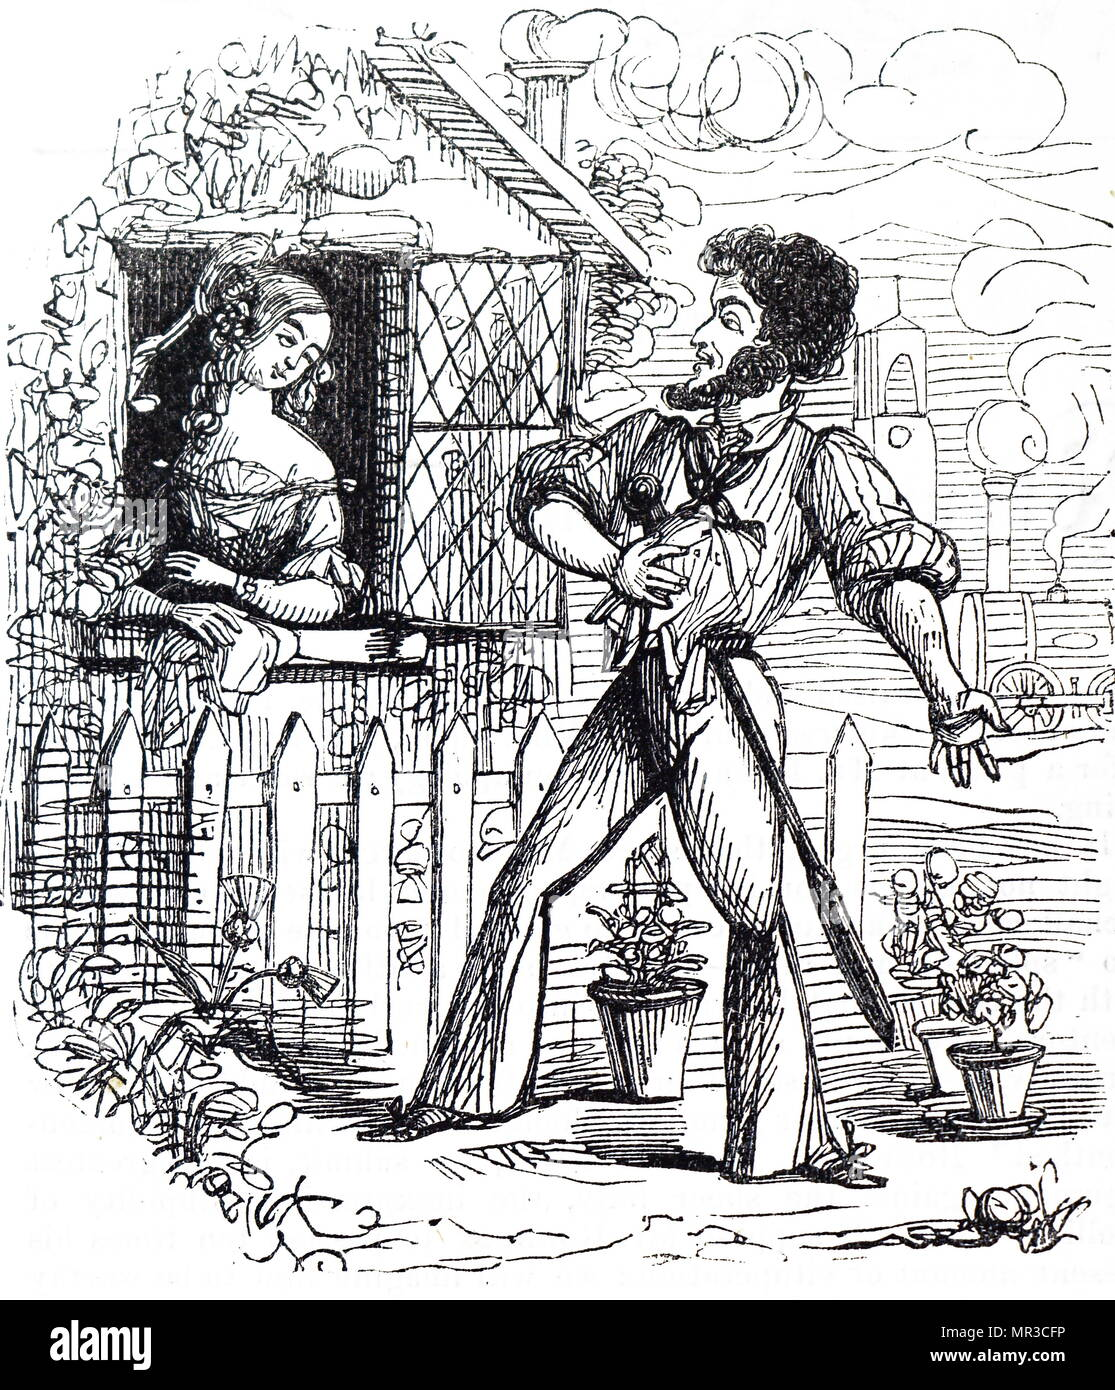 Cartoon depicting a satirical version of Romeo and Juliet. Dated 19th century - Stock Image